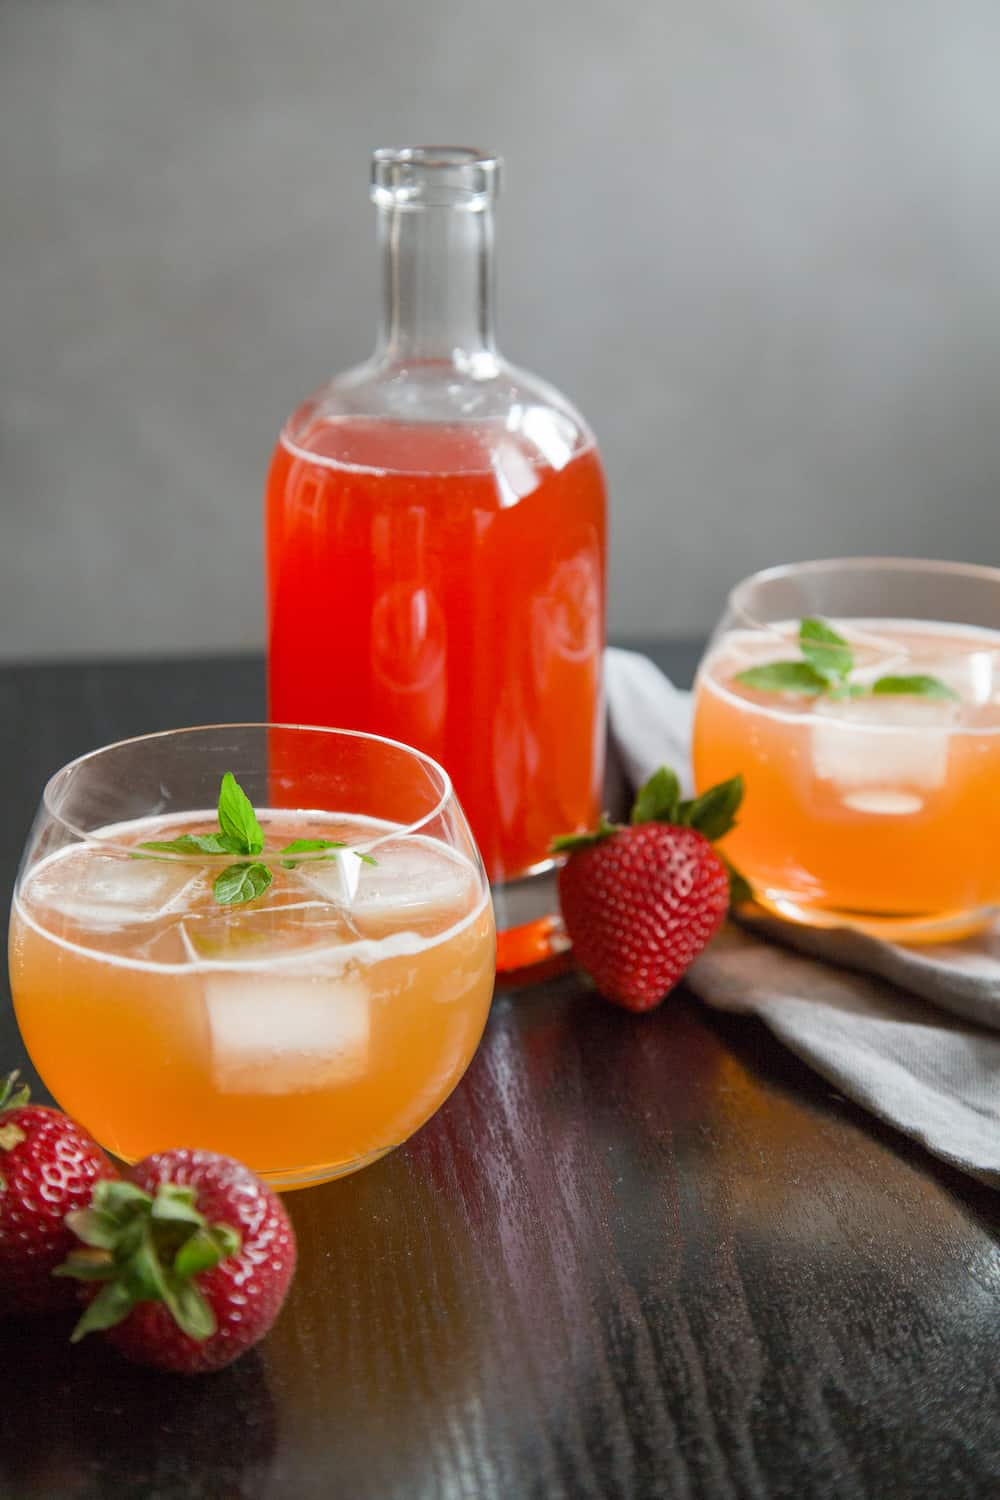 Quick(ish) Strawberry Shrub